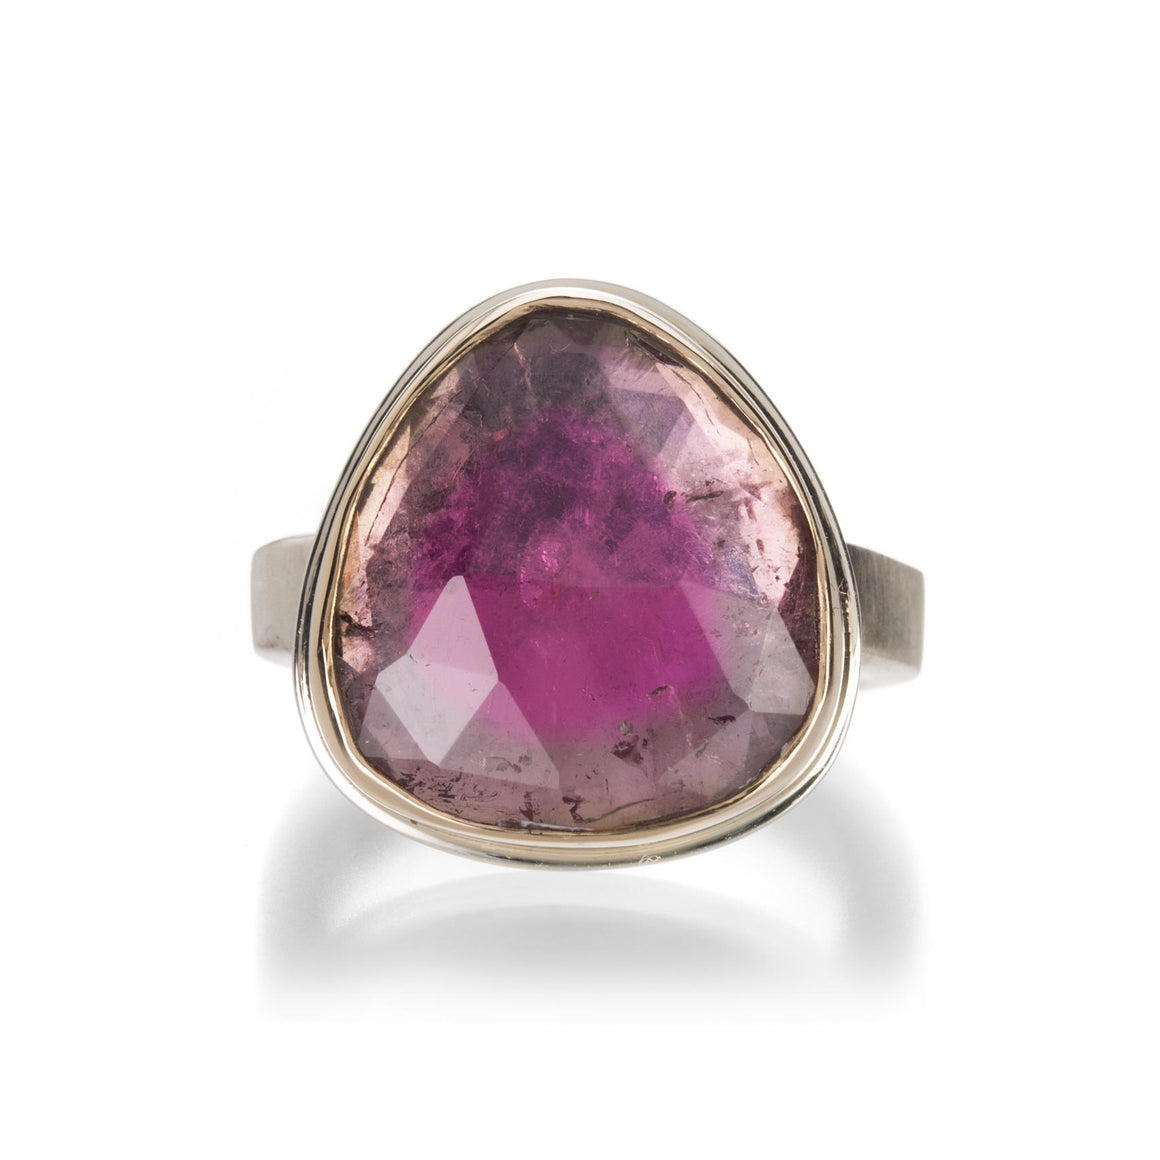 Jamie Joseph Rosecut Watermelon Tourmaline Ring | Quadrum Gallery